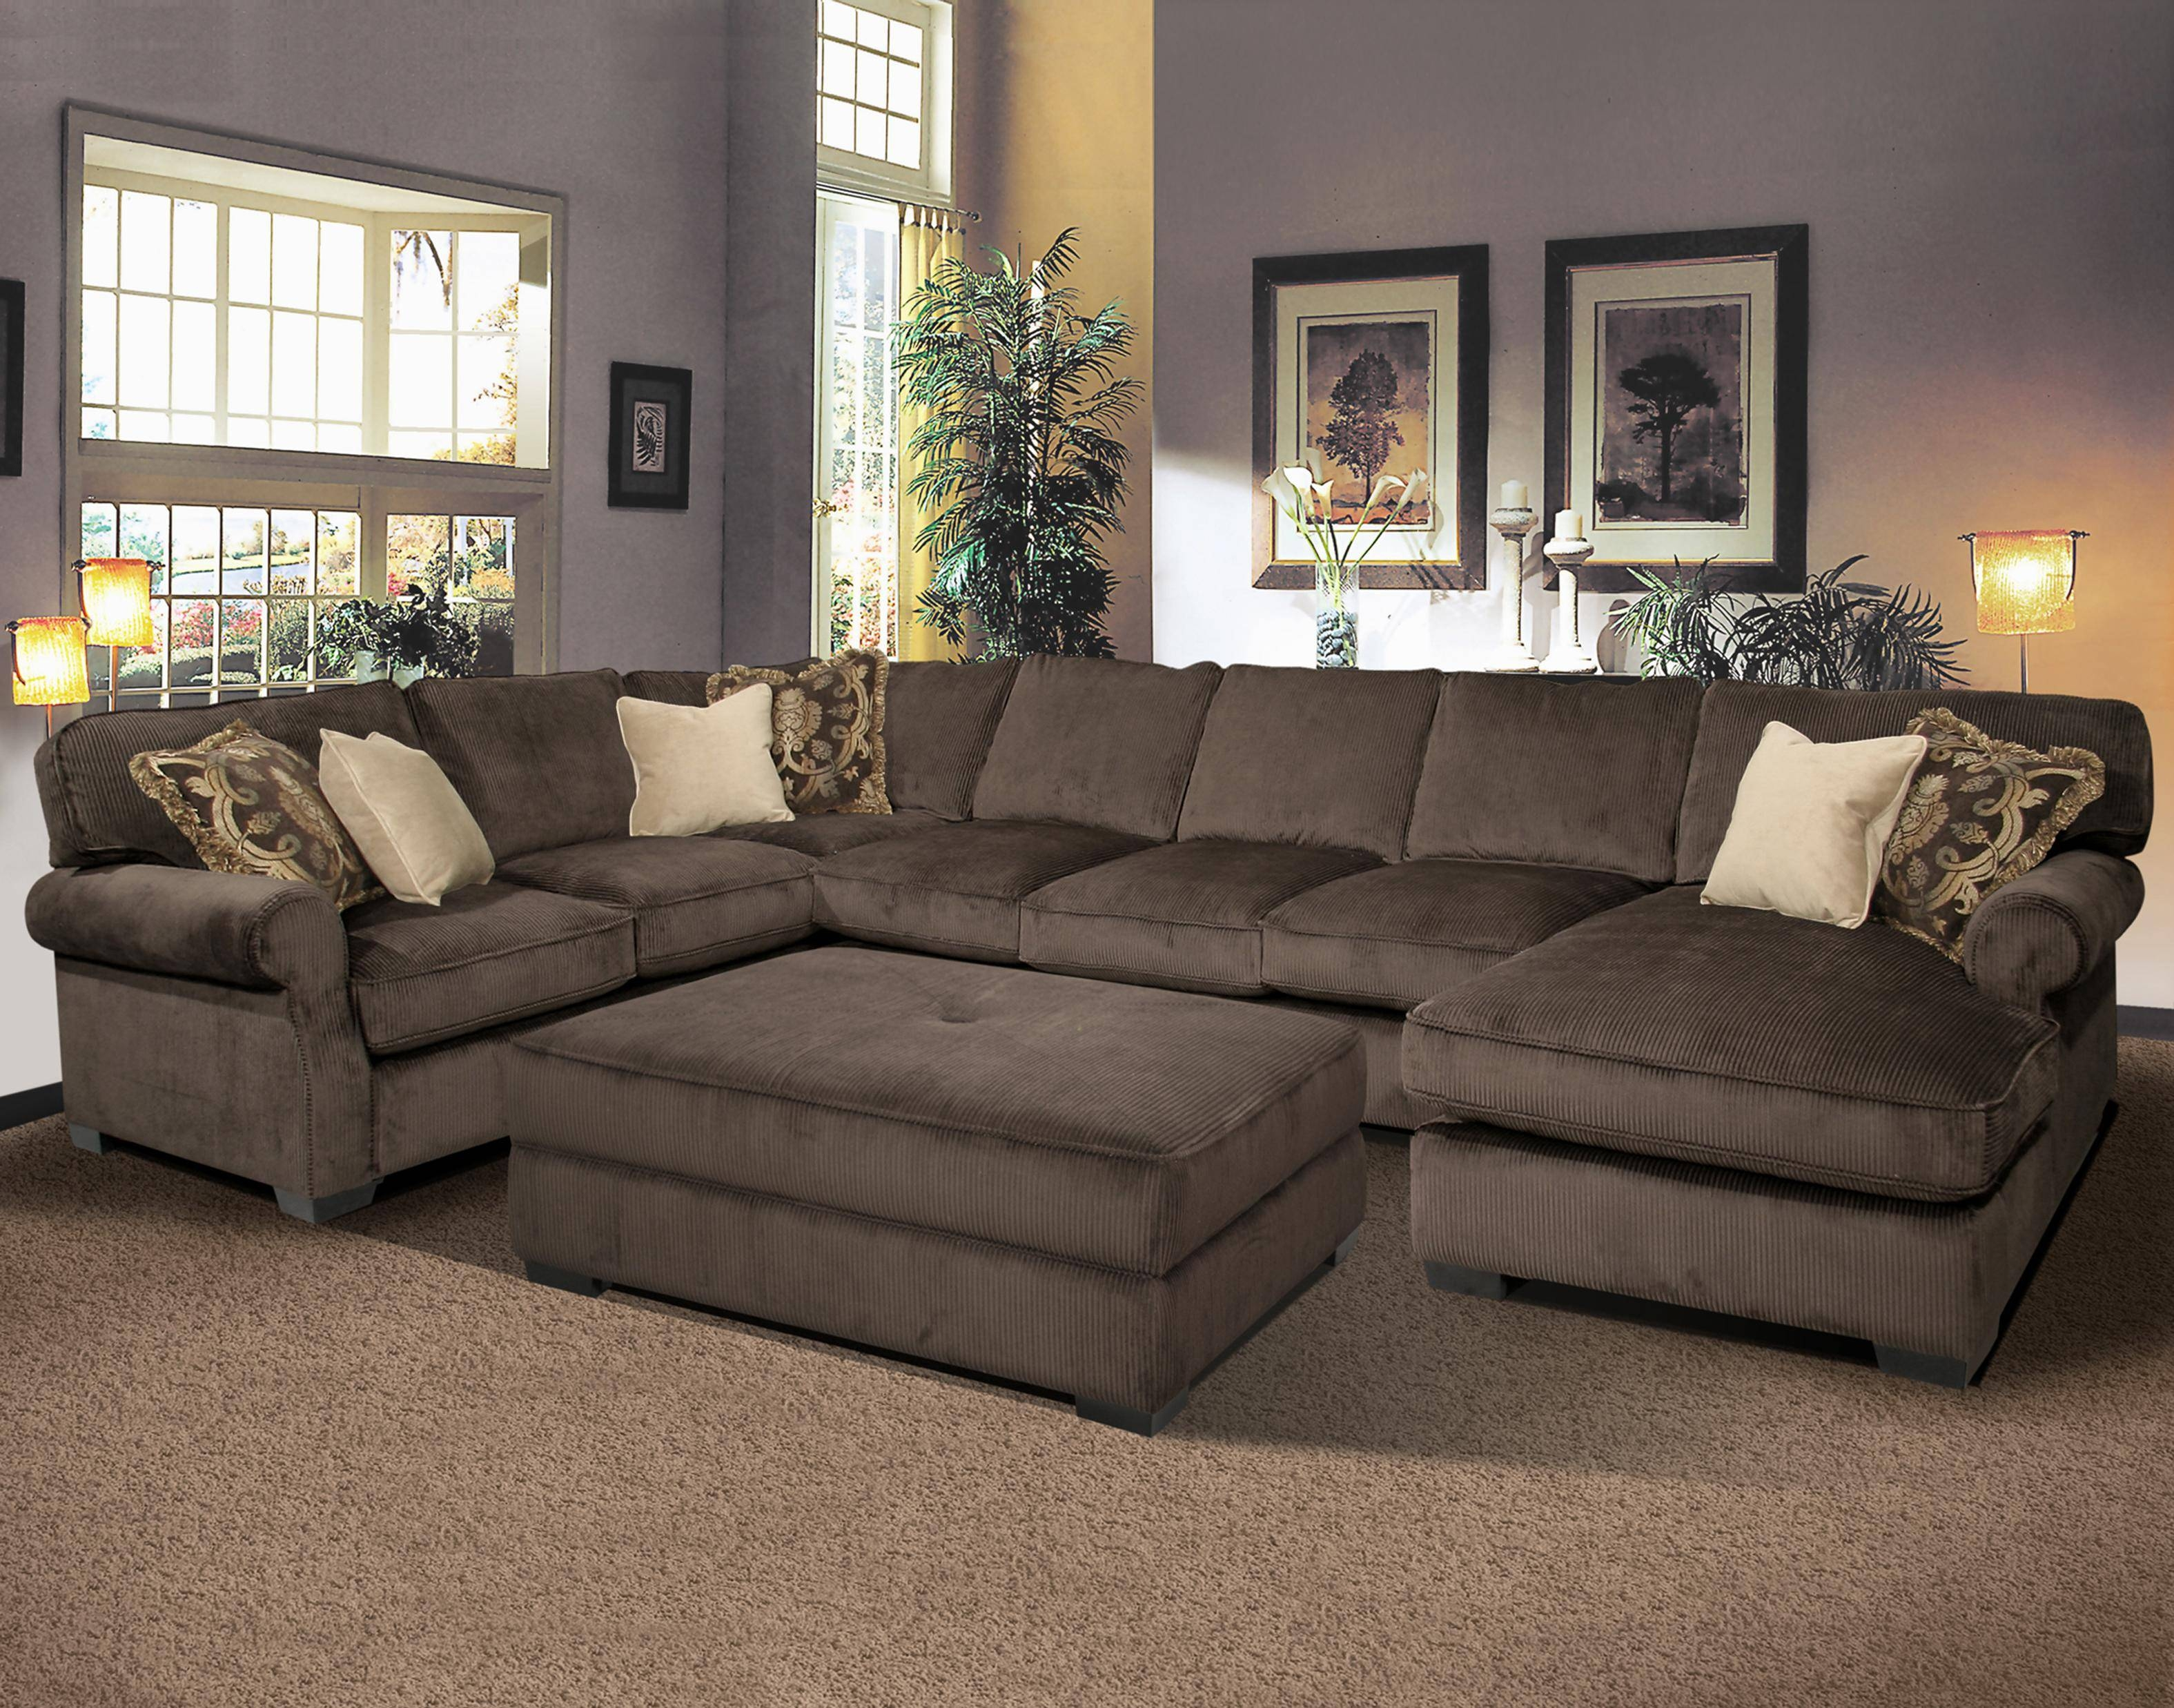 Extra Wide Sectional Sofa - Cleanupflorida with Extra Wide Sectional Sofas (Image 15 of 30)